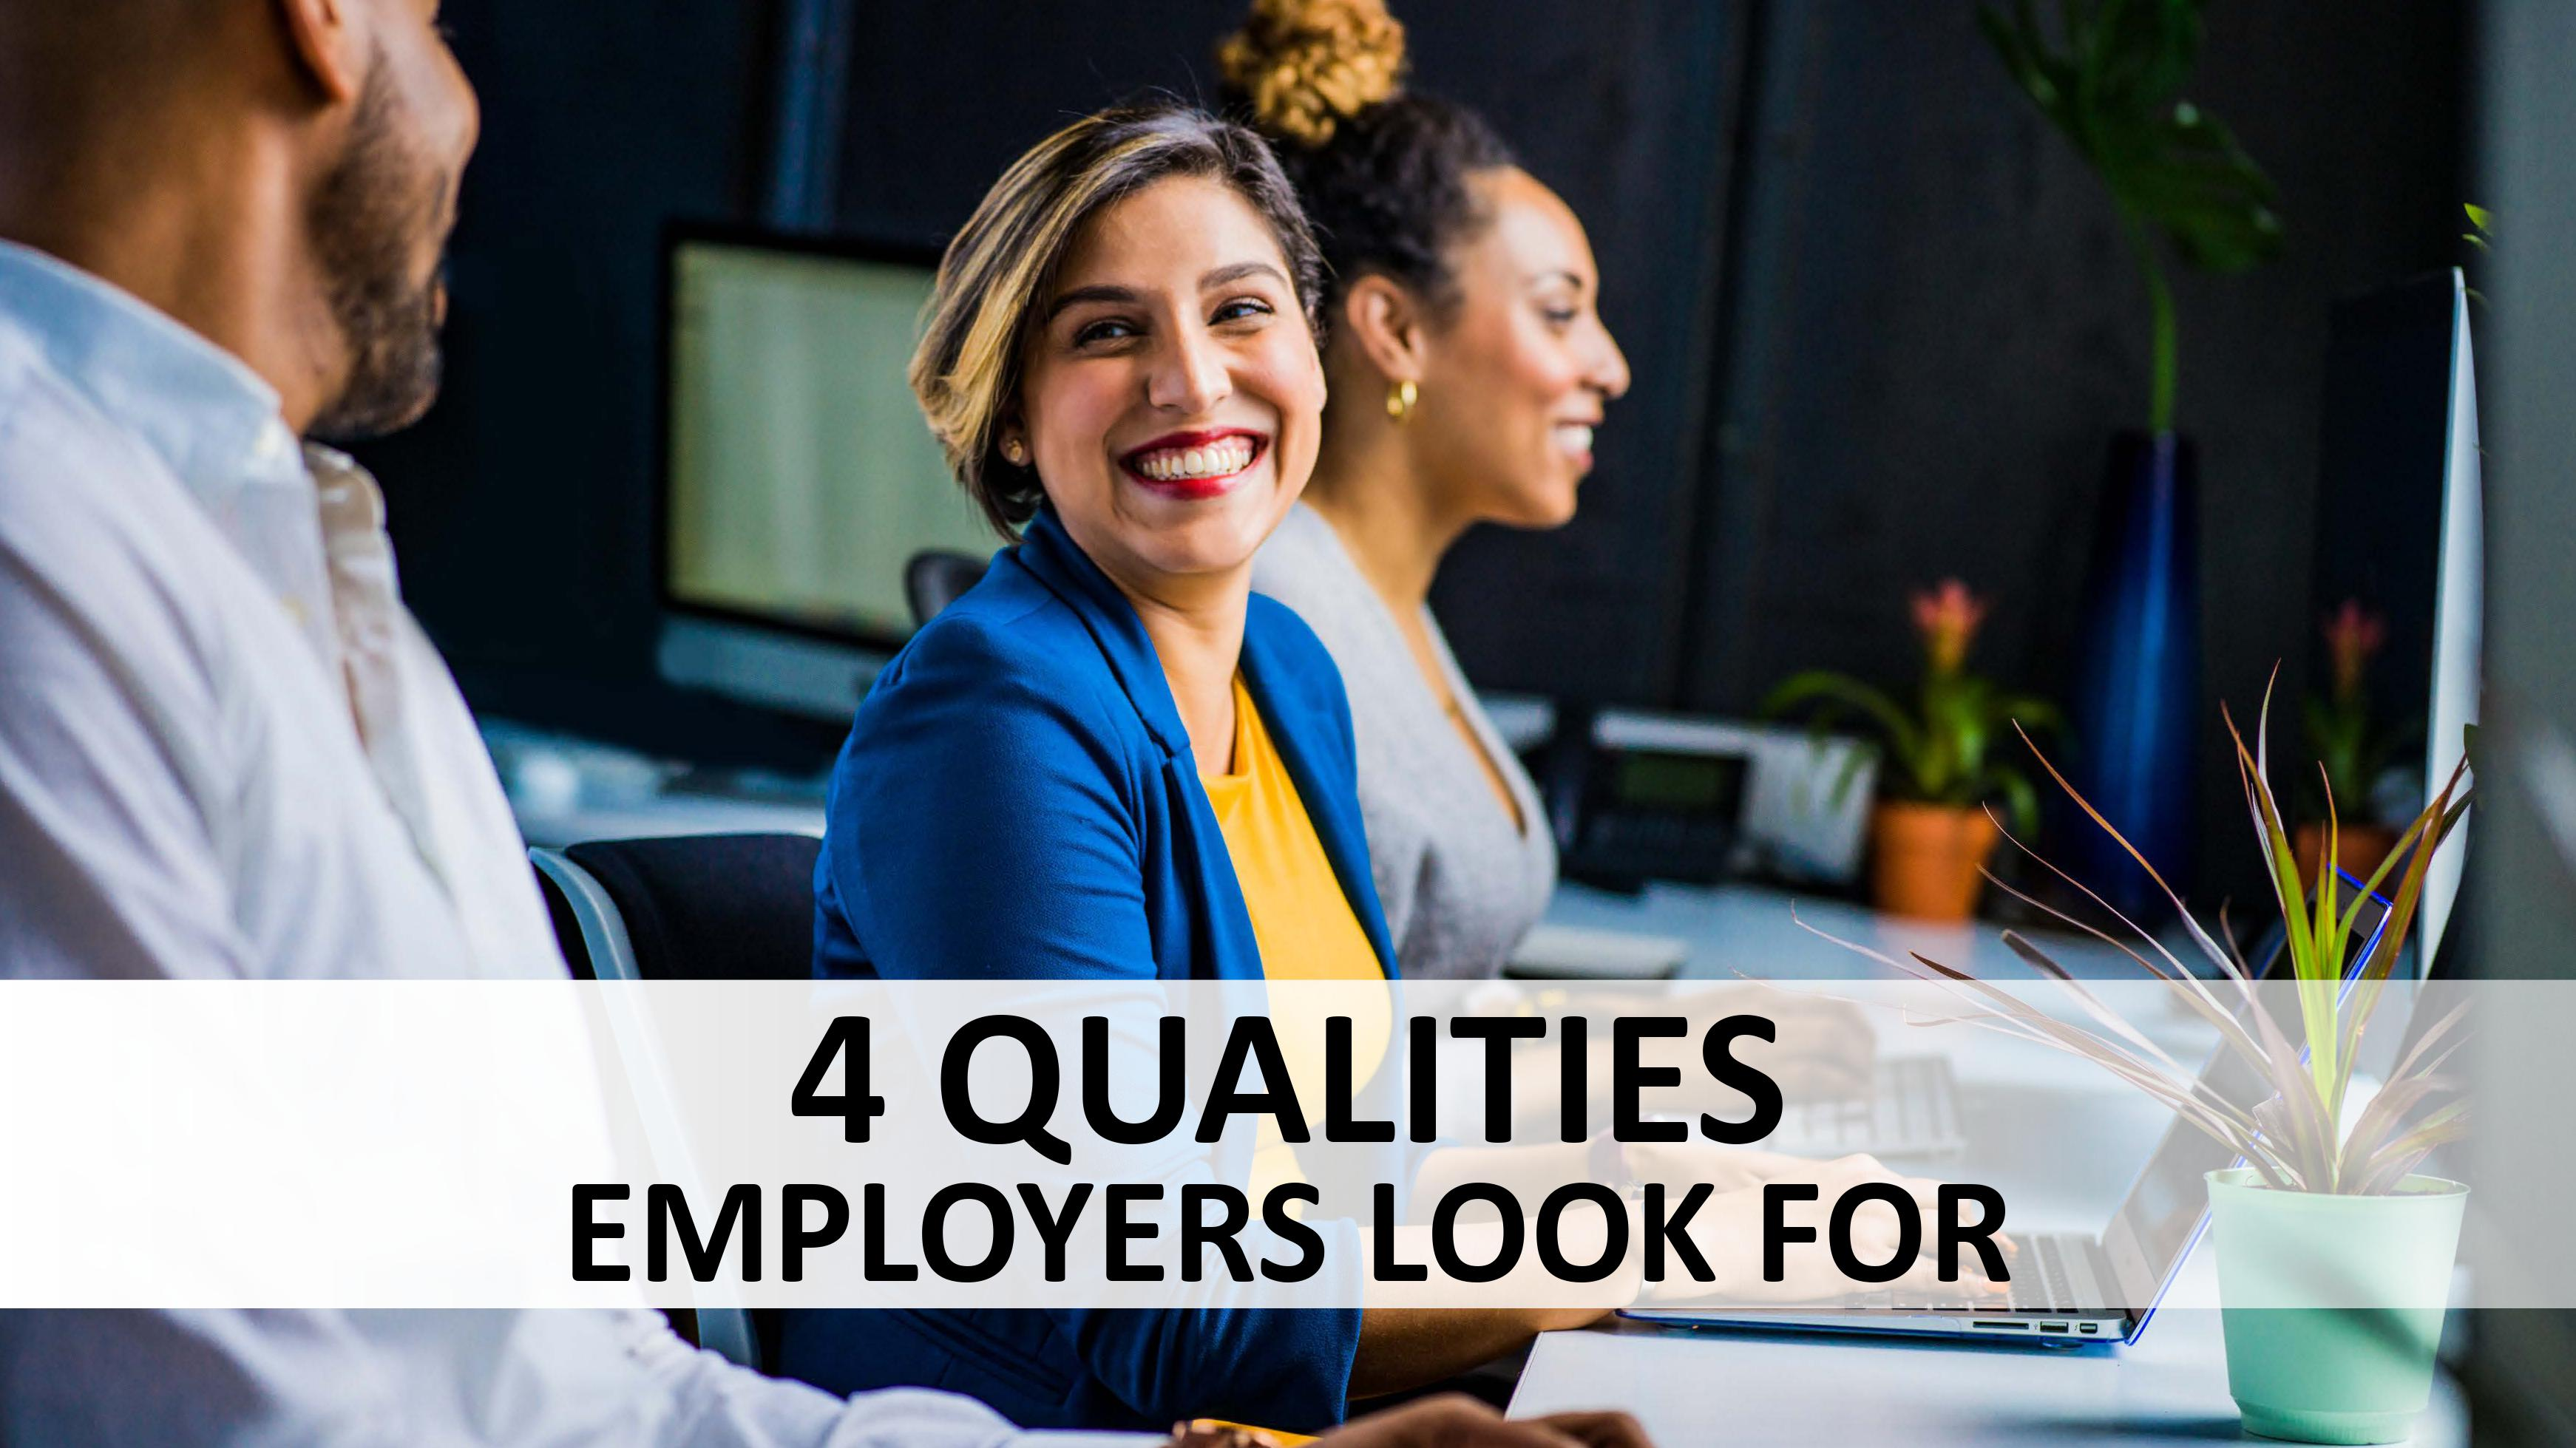 4 Qualities Employers Look For